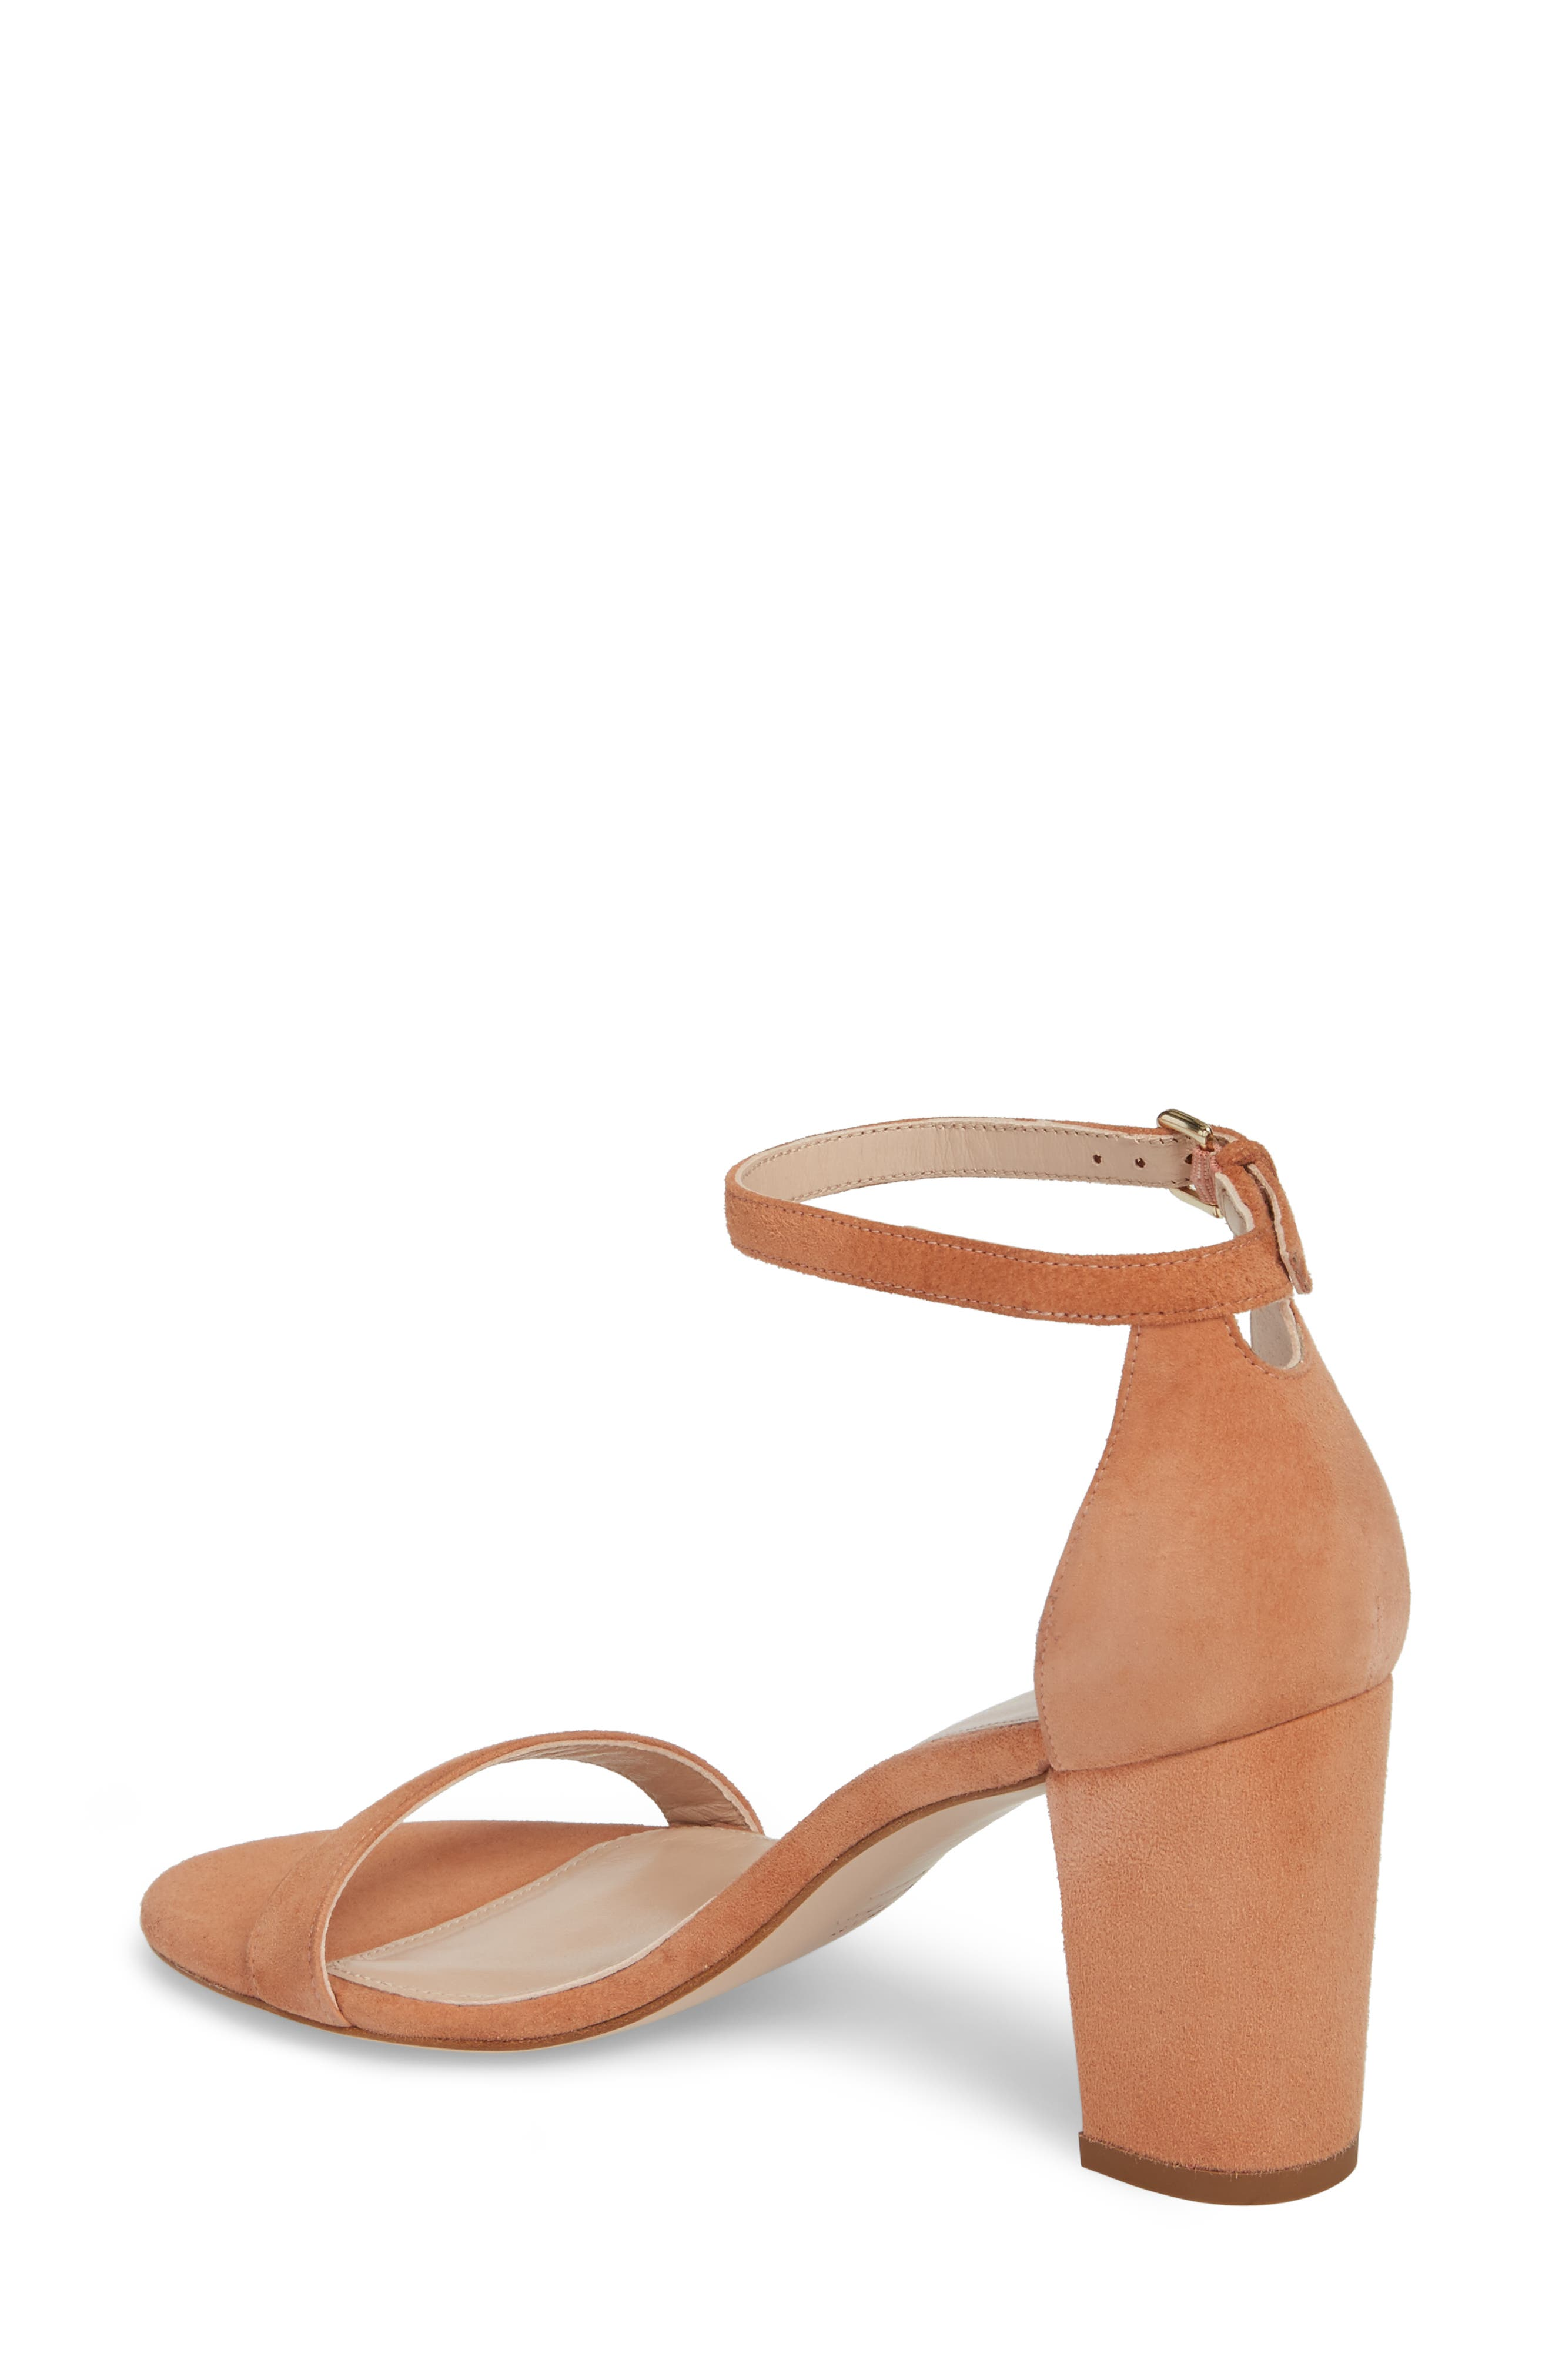 NearlyNude Ankle Strap Sandal,                             Alternate thumbnail 31, color,